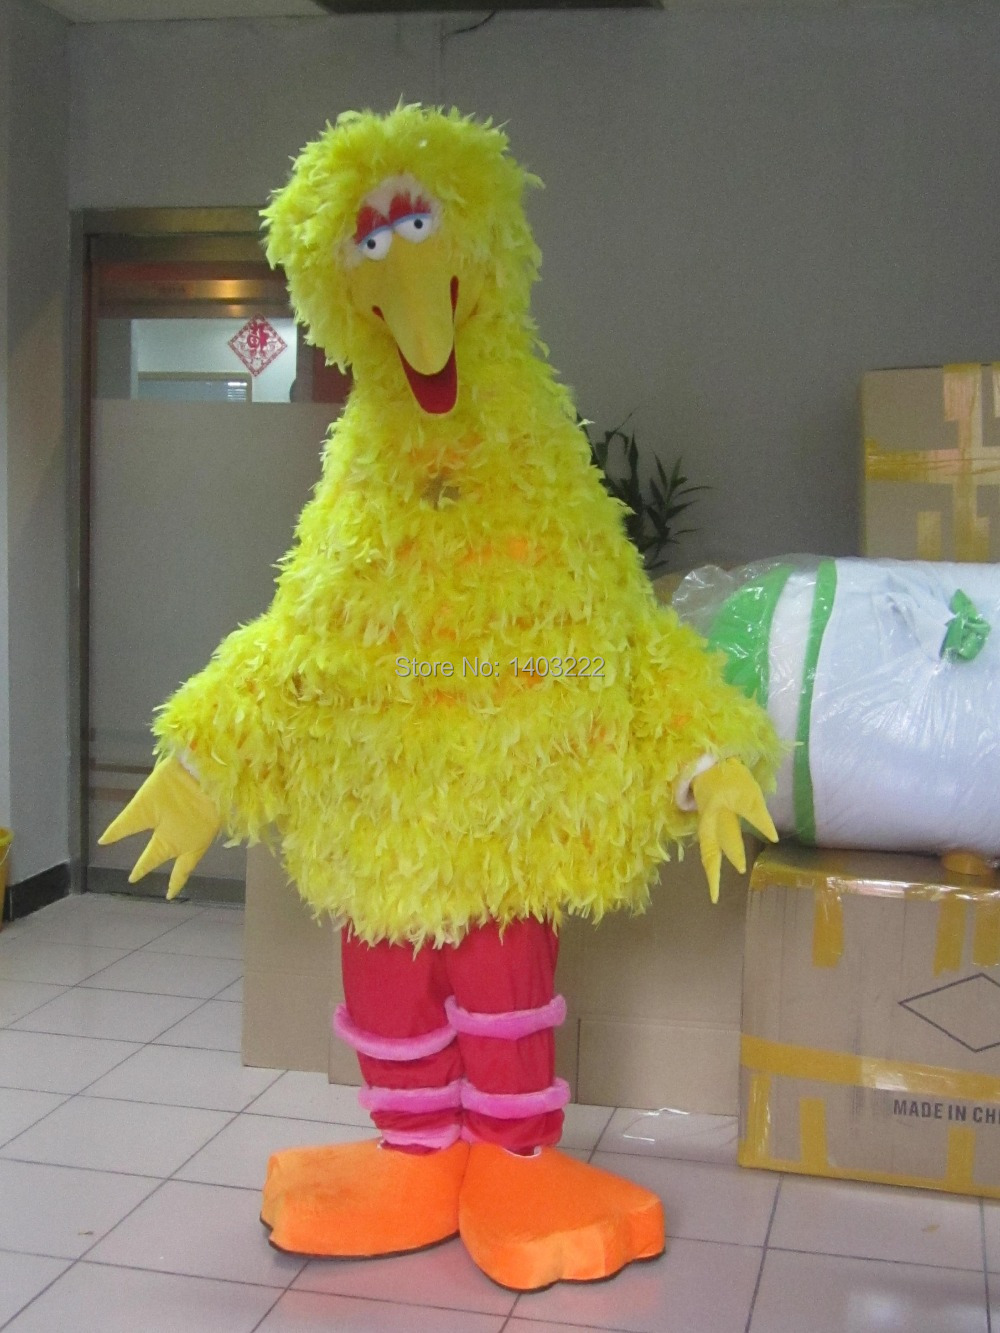 New Yellow Big Bird Costume Mascot Penghantaran percuma